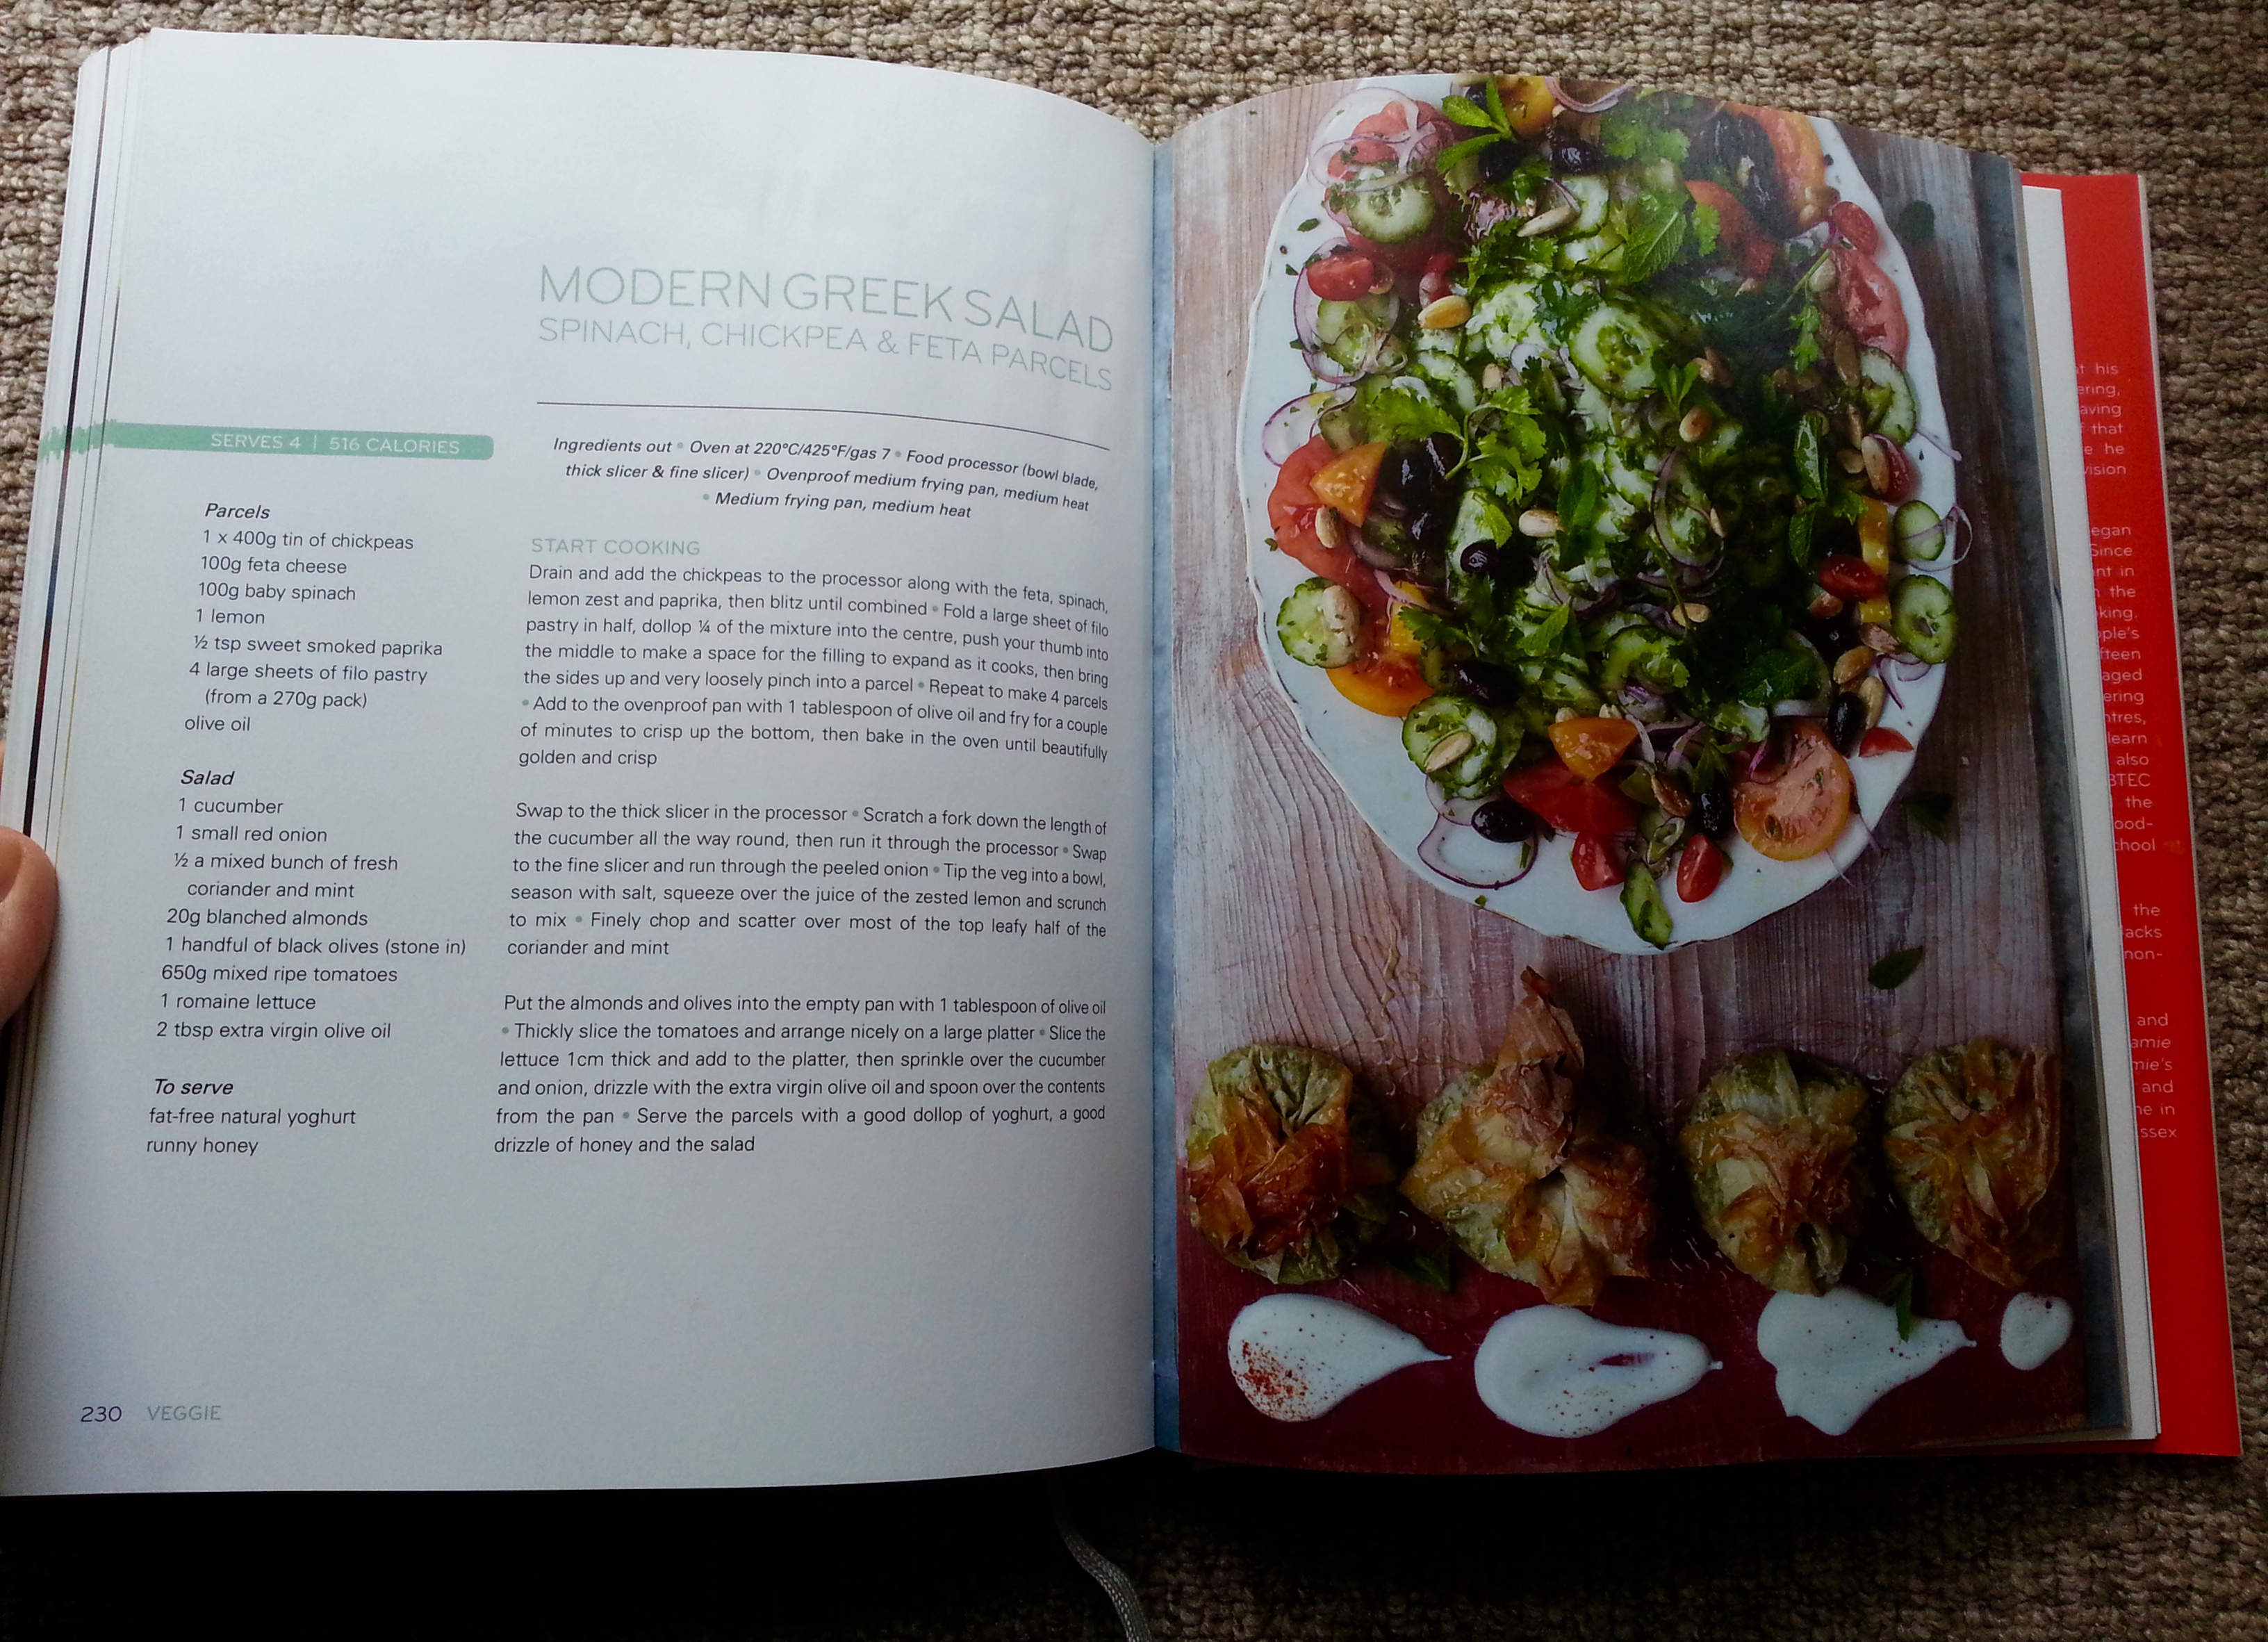 Jamies 15 minute meals book review everywhere jamies 15 minute meals jamie oliver recipe book greek salad forumfinder